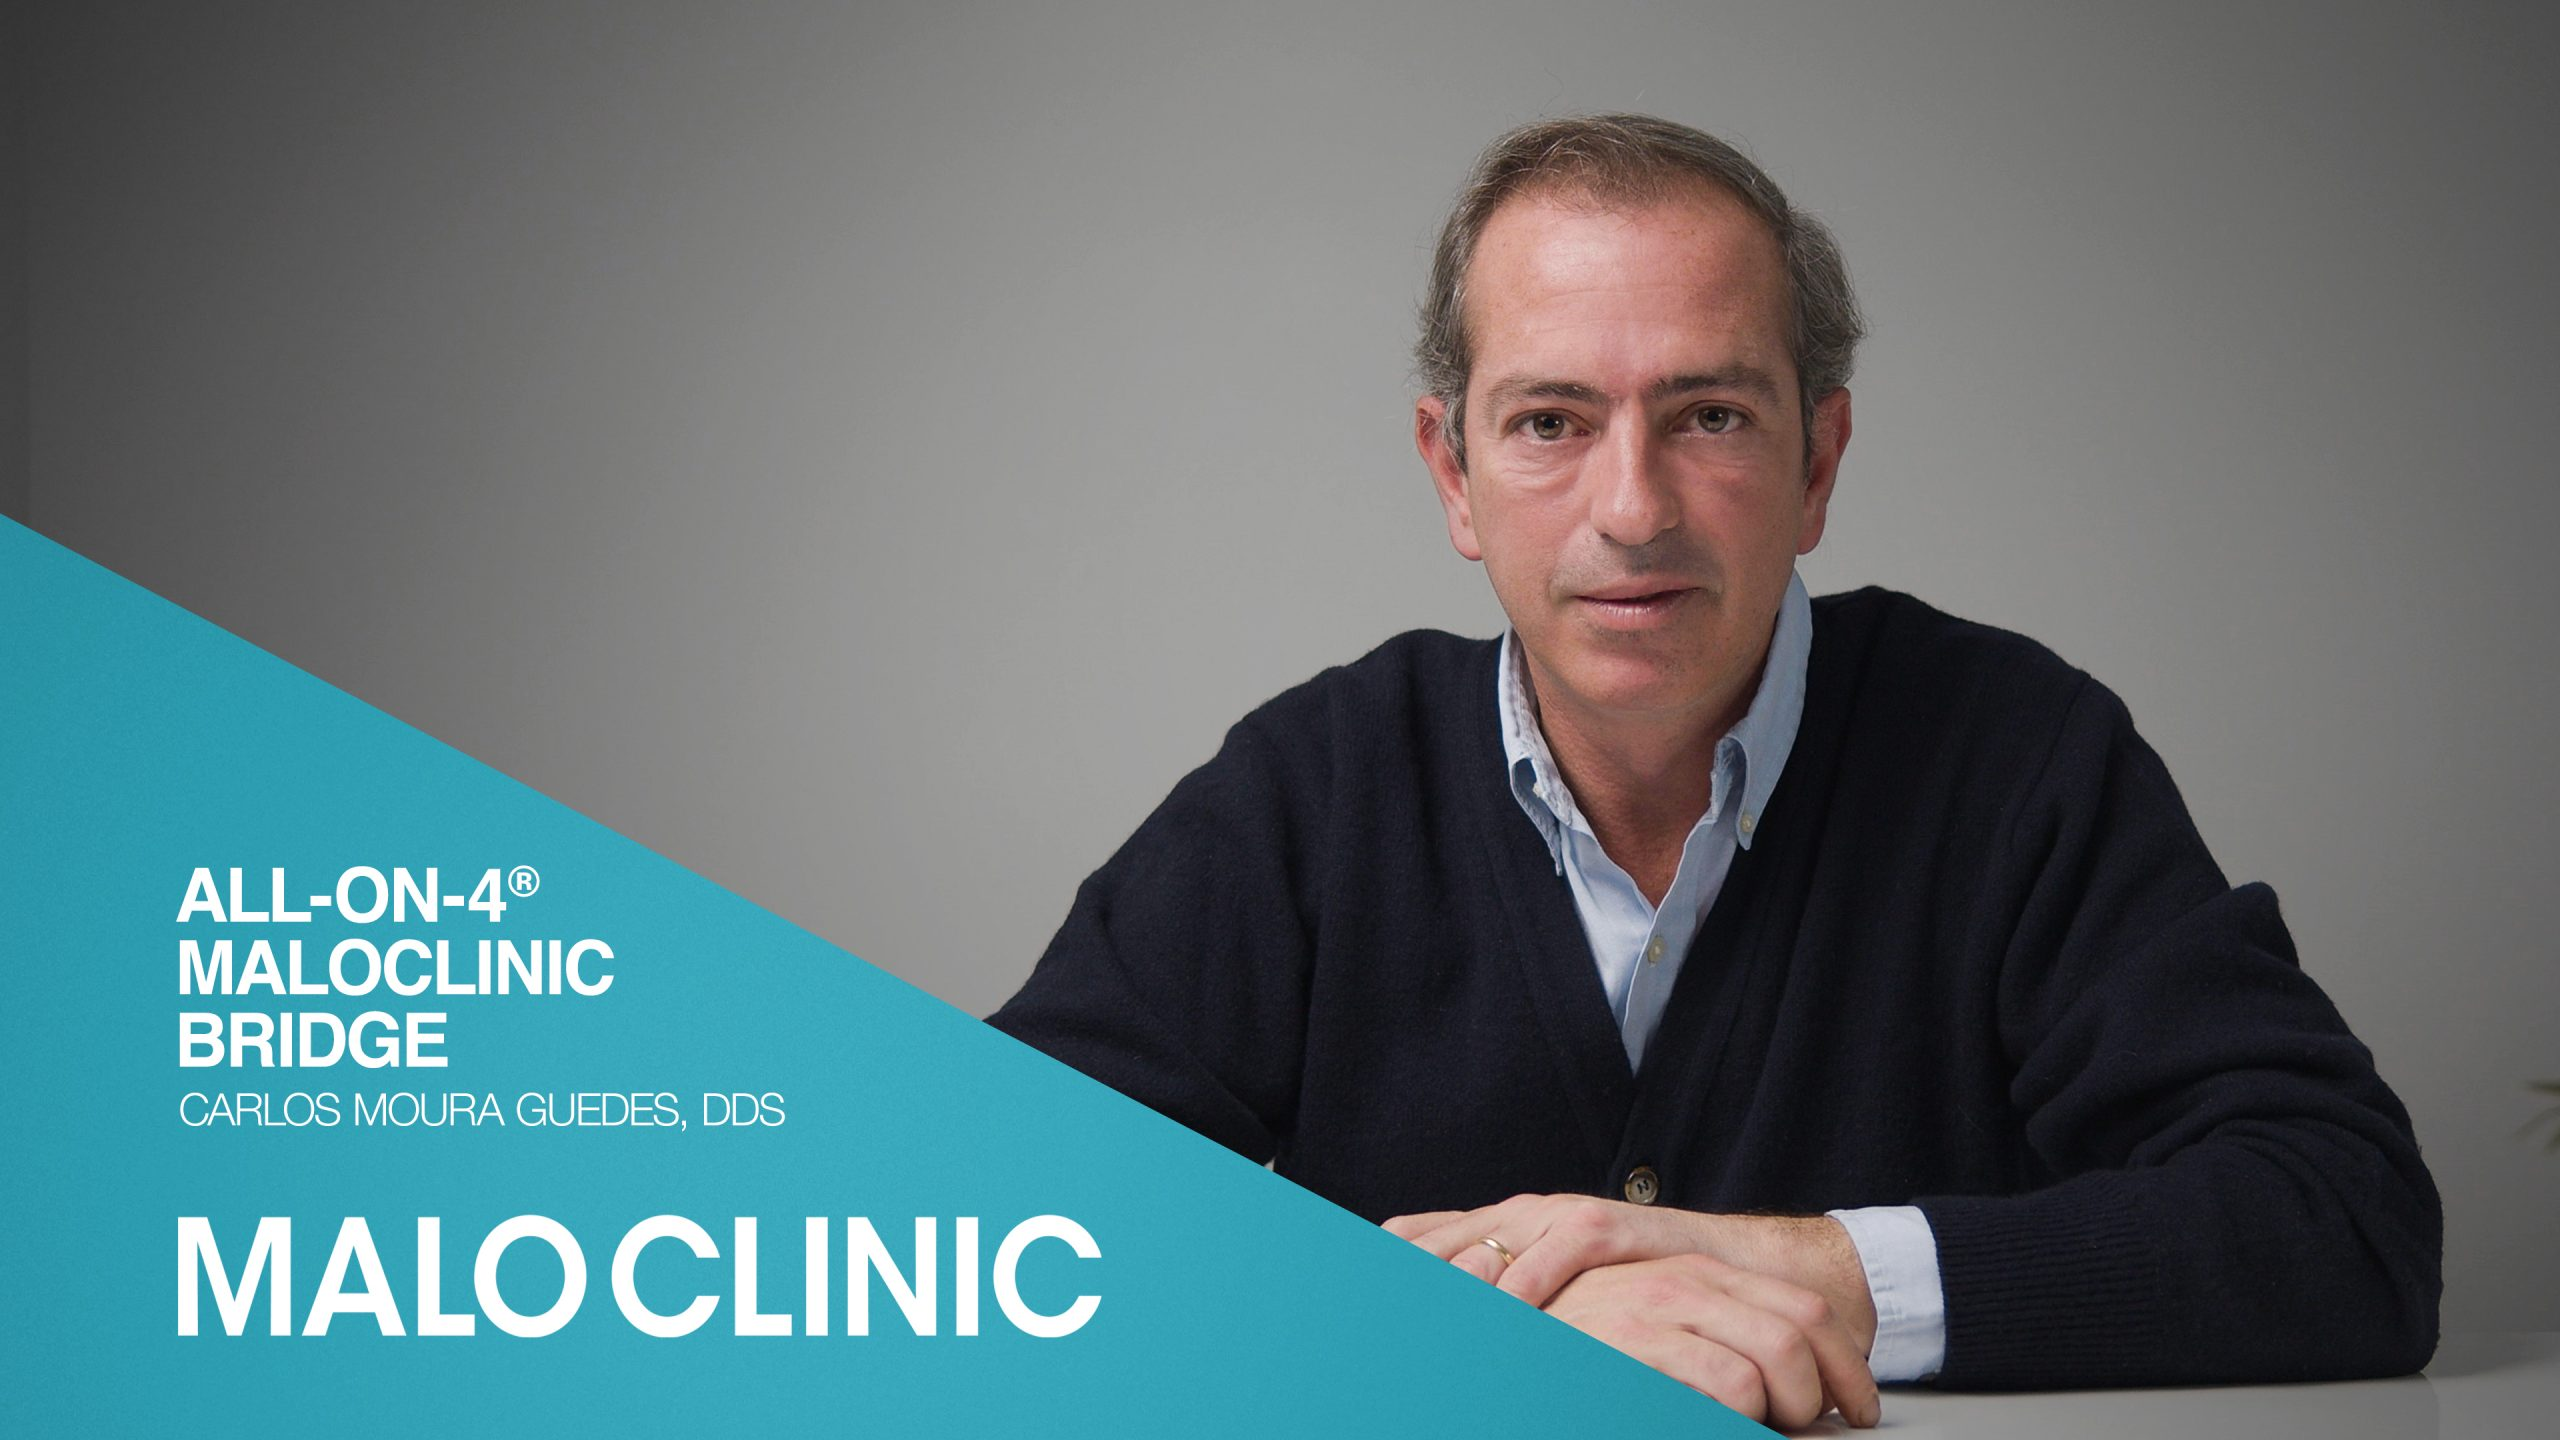 All-on-4® MALO Education, Dr. Carlos Moura Guedes